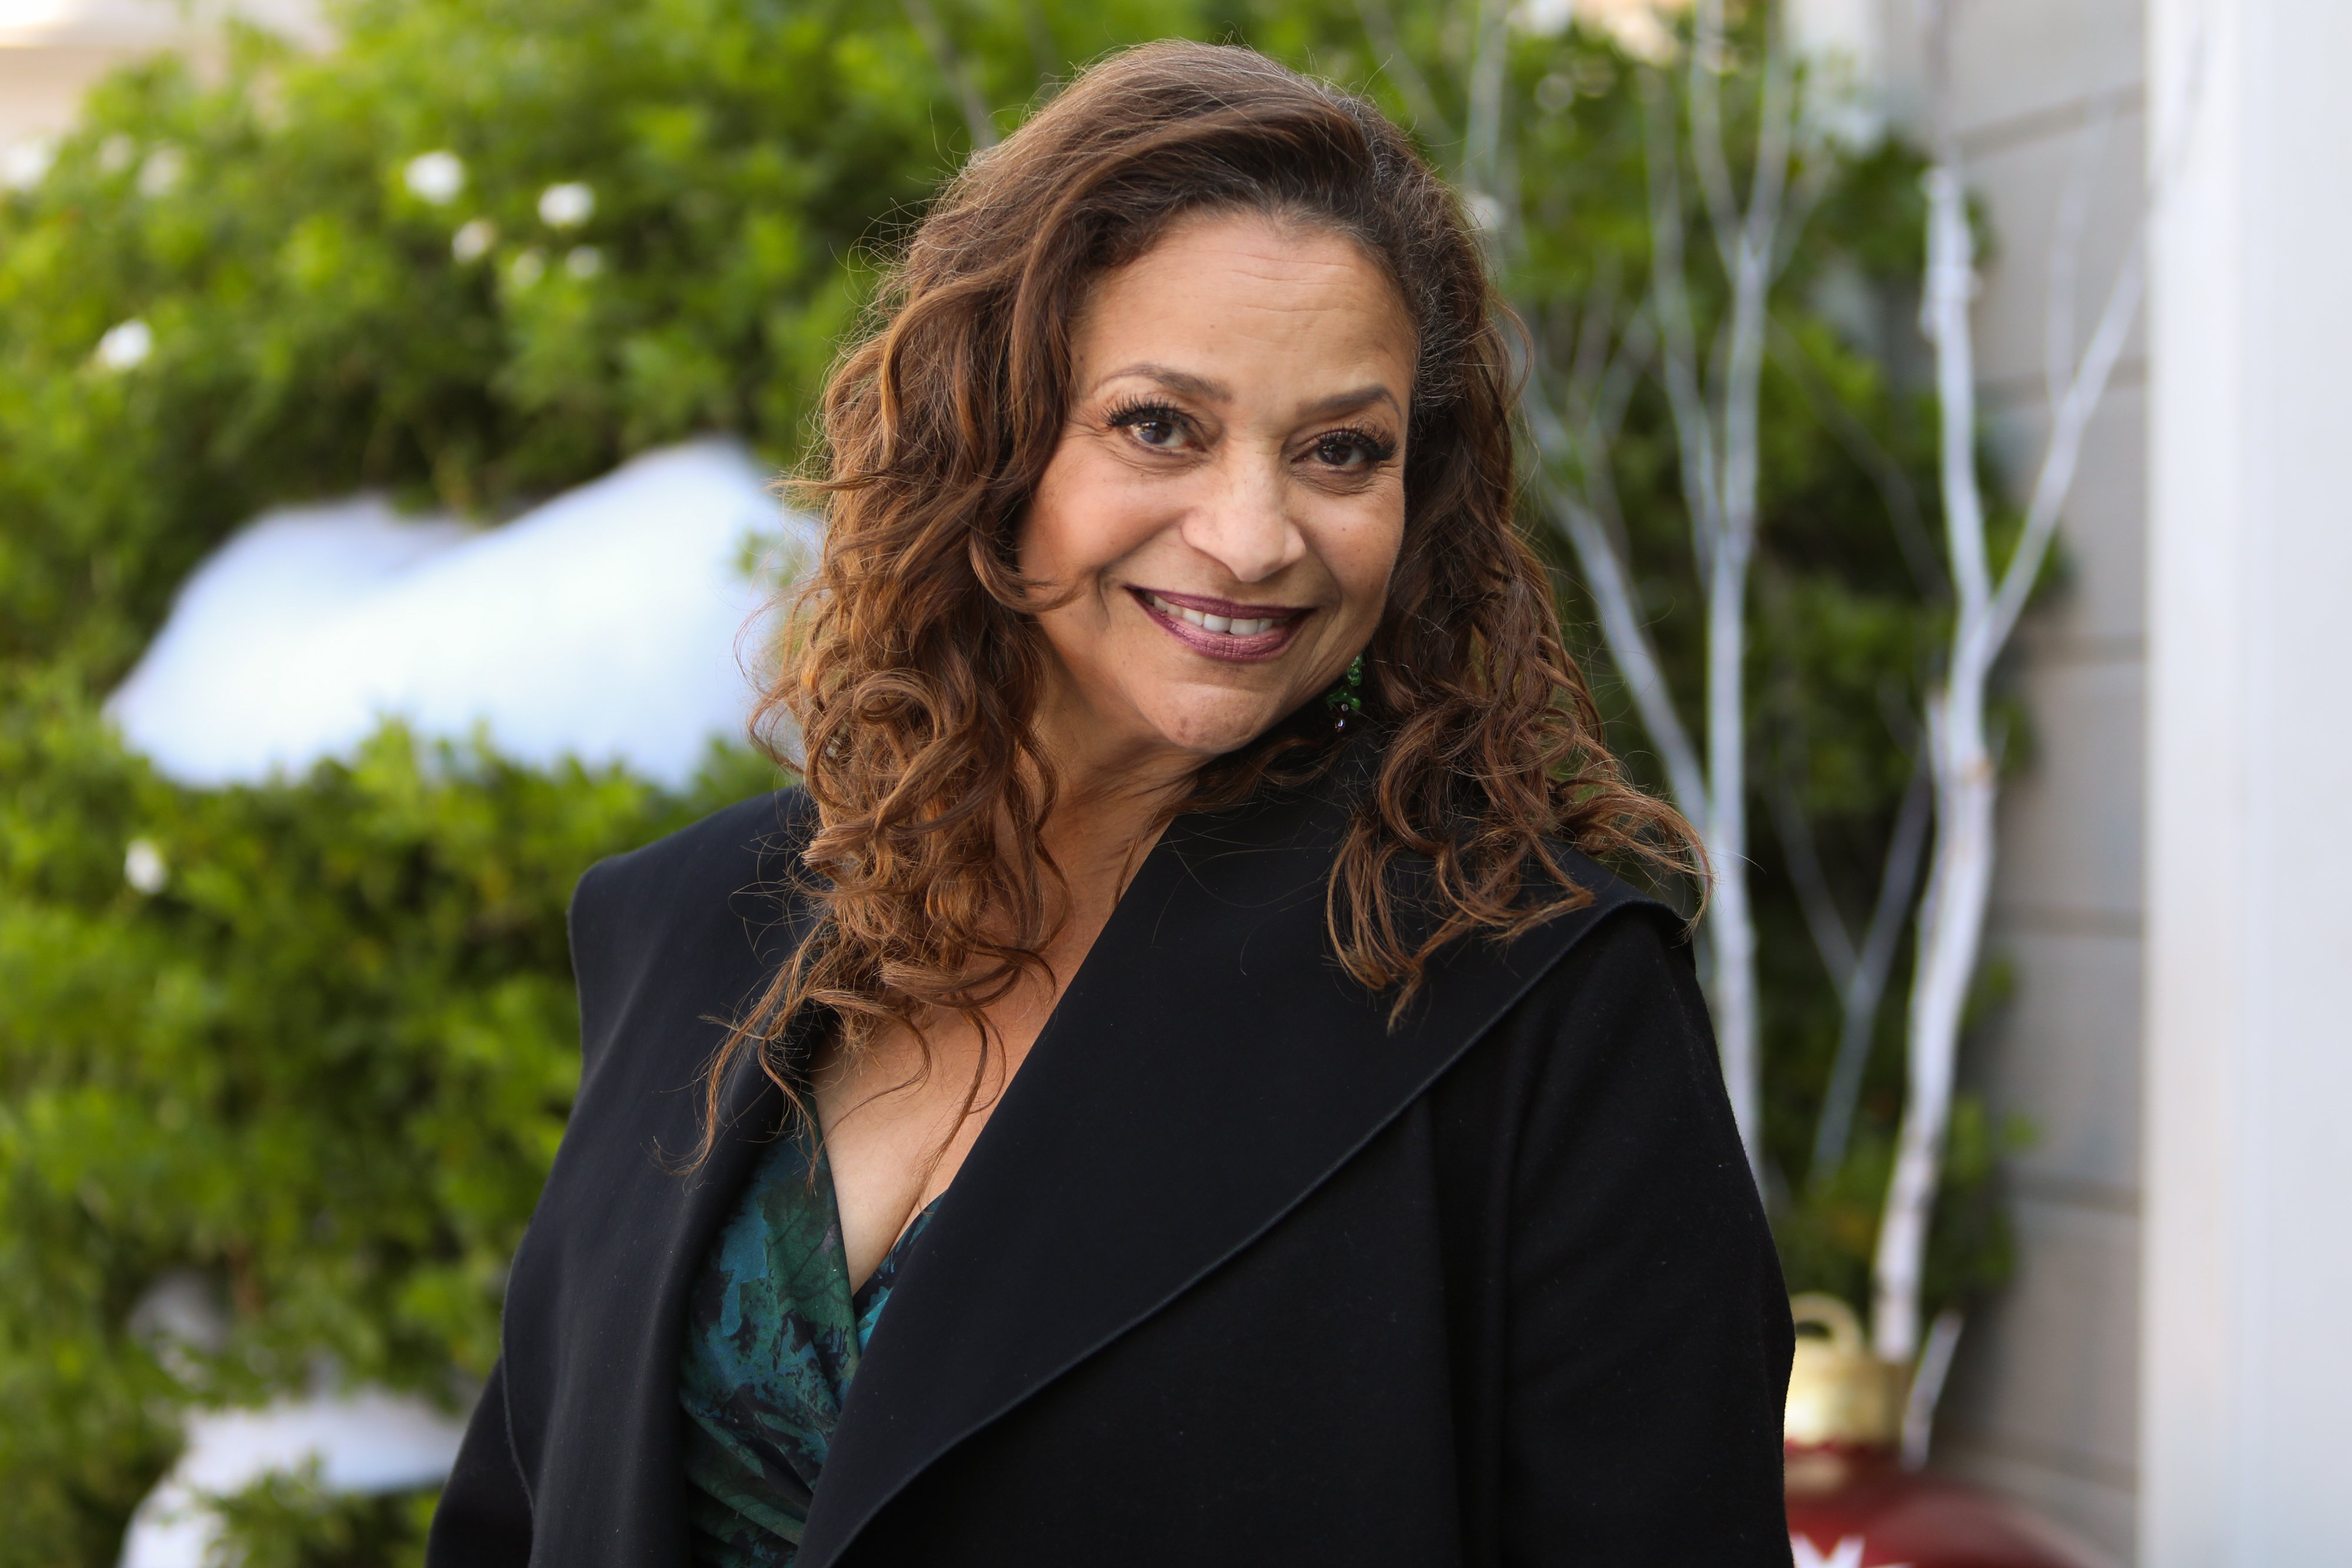 Debbie Allen on November 25, 2019 in Universal City, California | Source: Getty Images